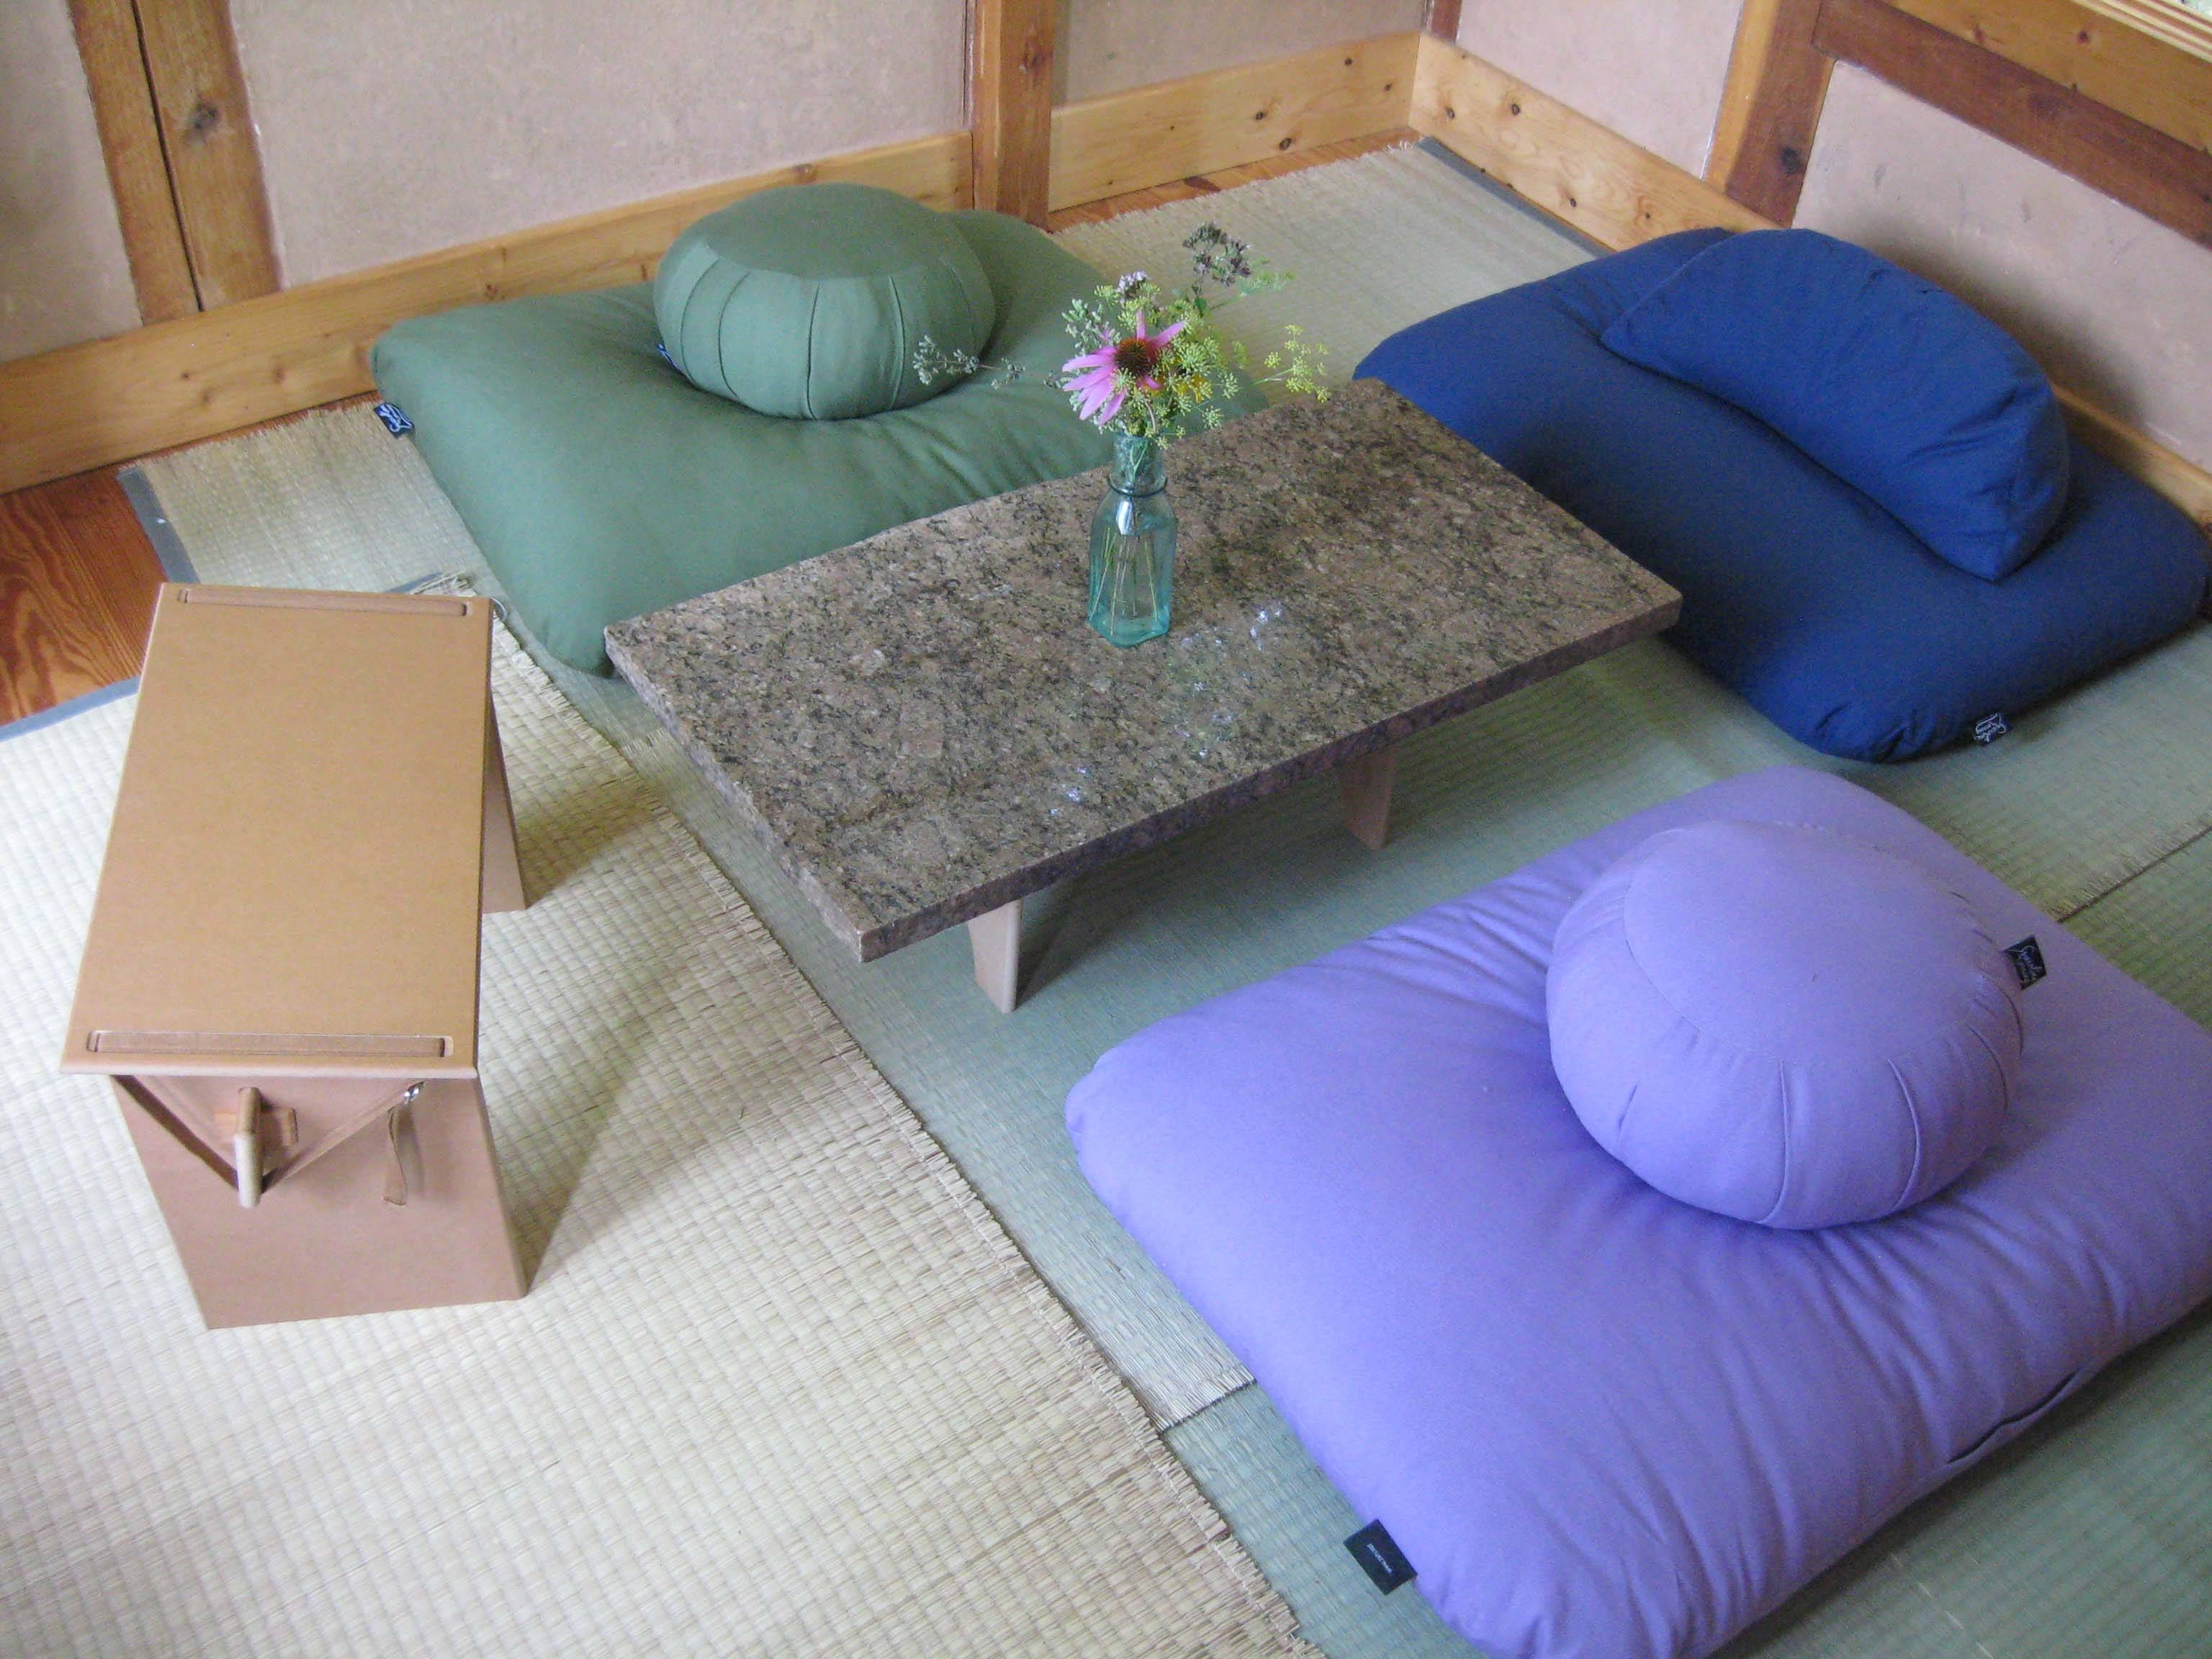 Floor Seating Ideas Whichu0026#039;ll Make You Donu0026#039;t Want